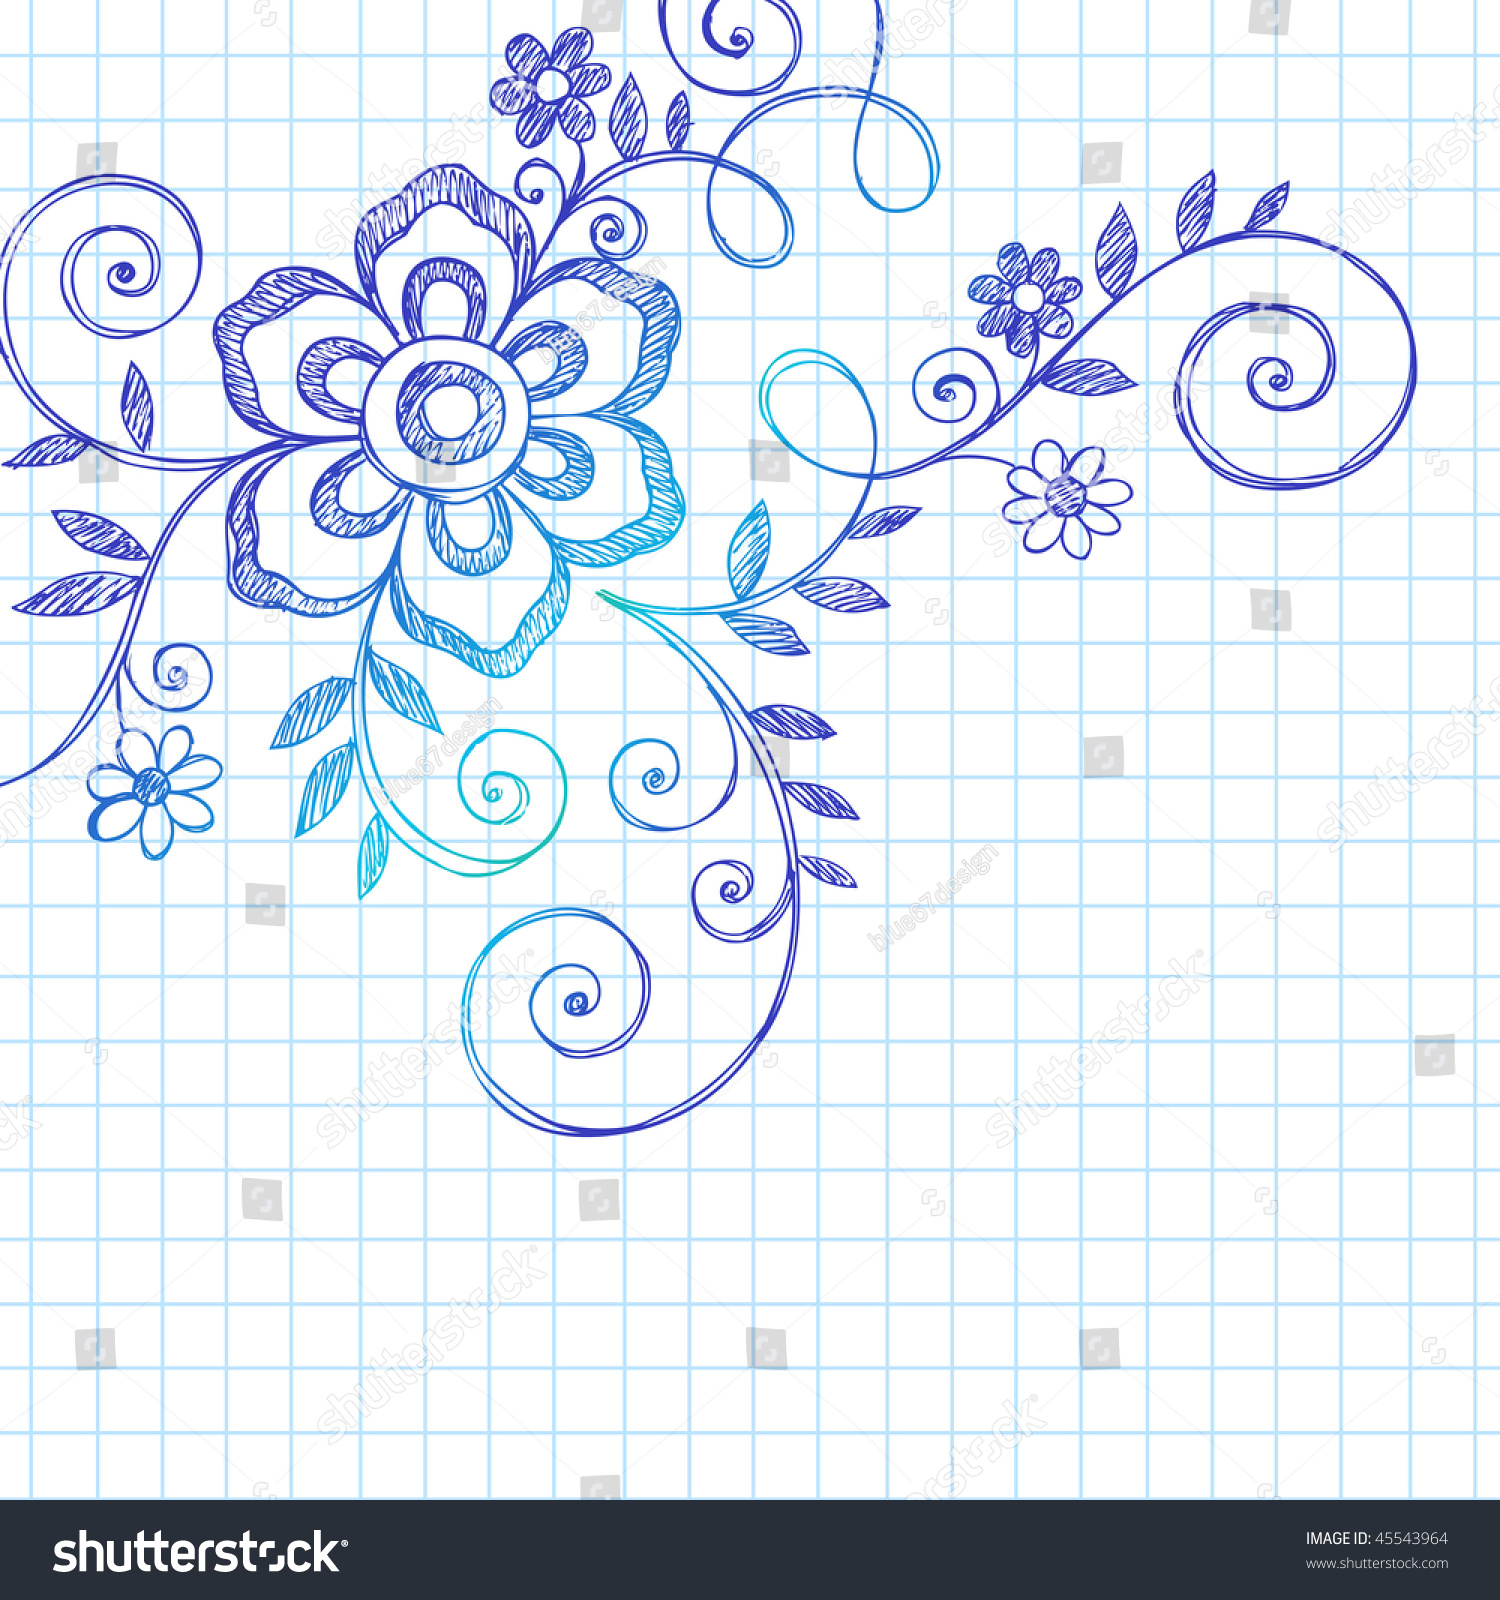 Handdrawn Abstract Flower Vines Sketchy Notebook Stock